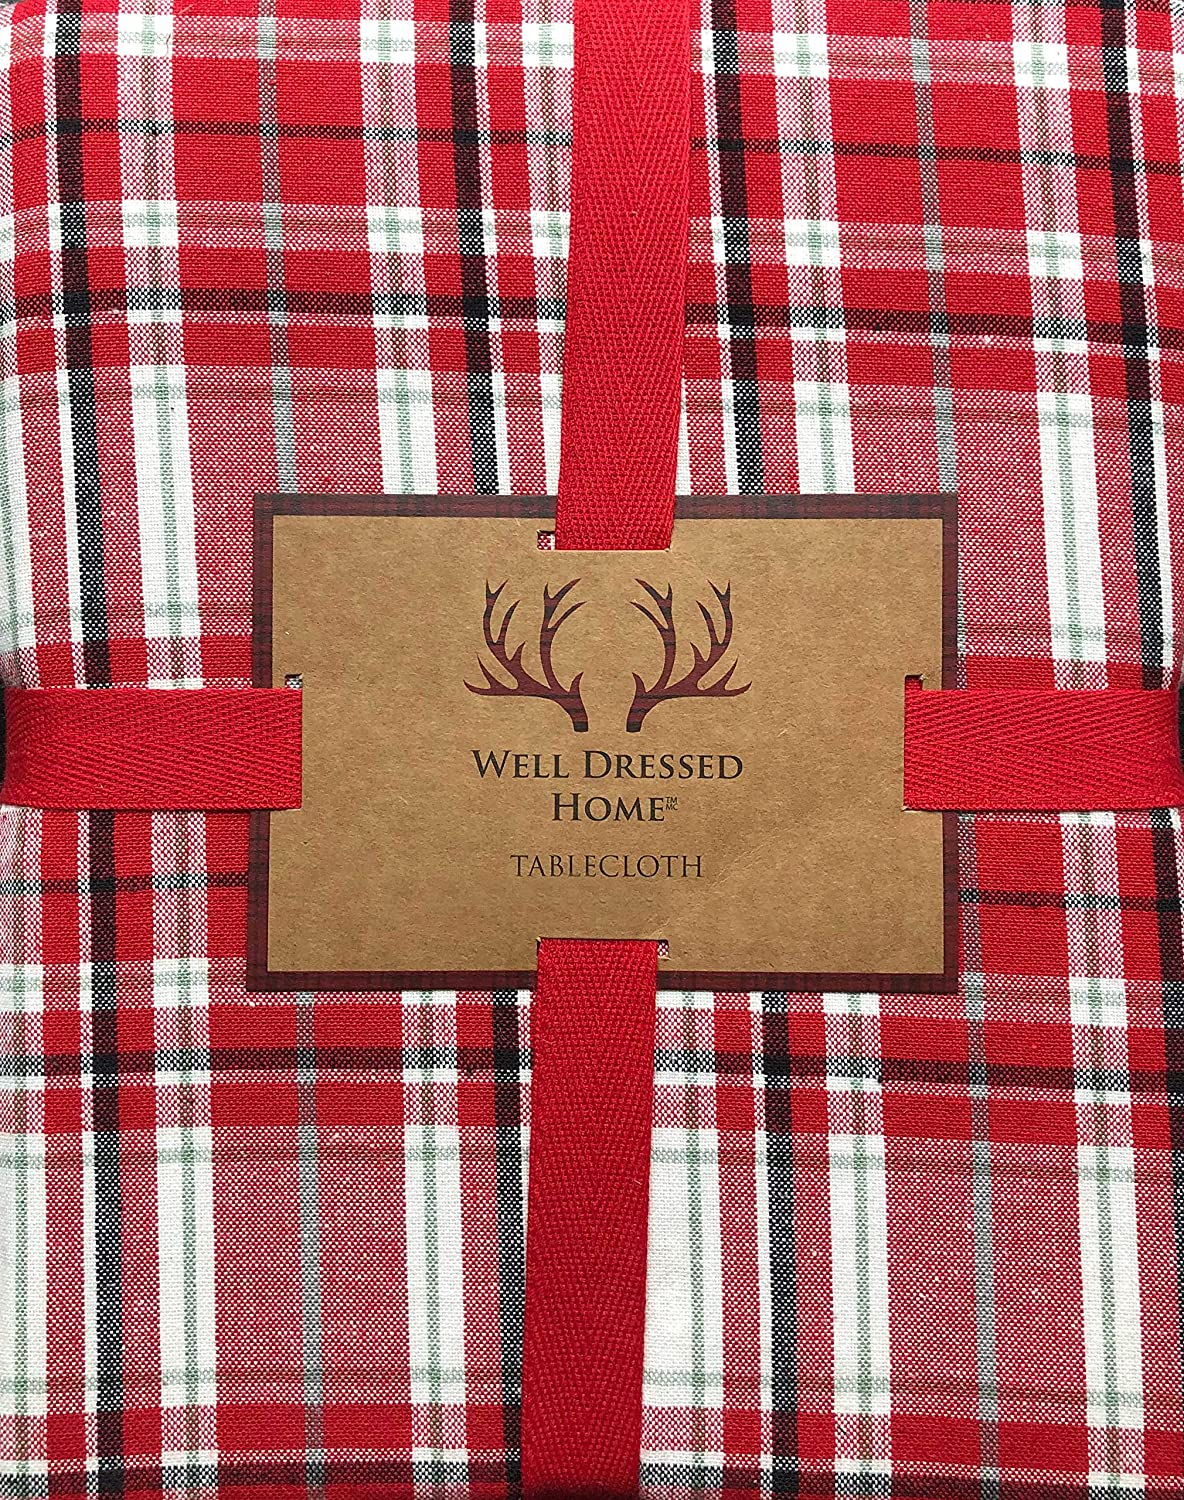 Well Dressed Home Tablecloth Holiday Christmas Checked Plaid Pattern in Shades of Red and White, with Thin Green Stripes, 60 Inches x 84 Inches